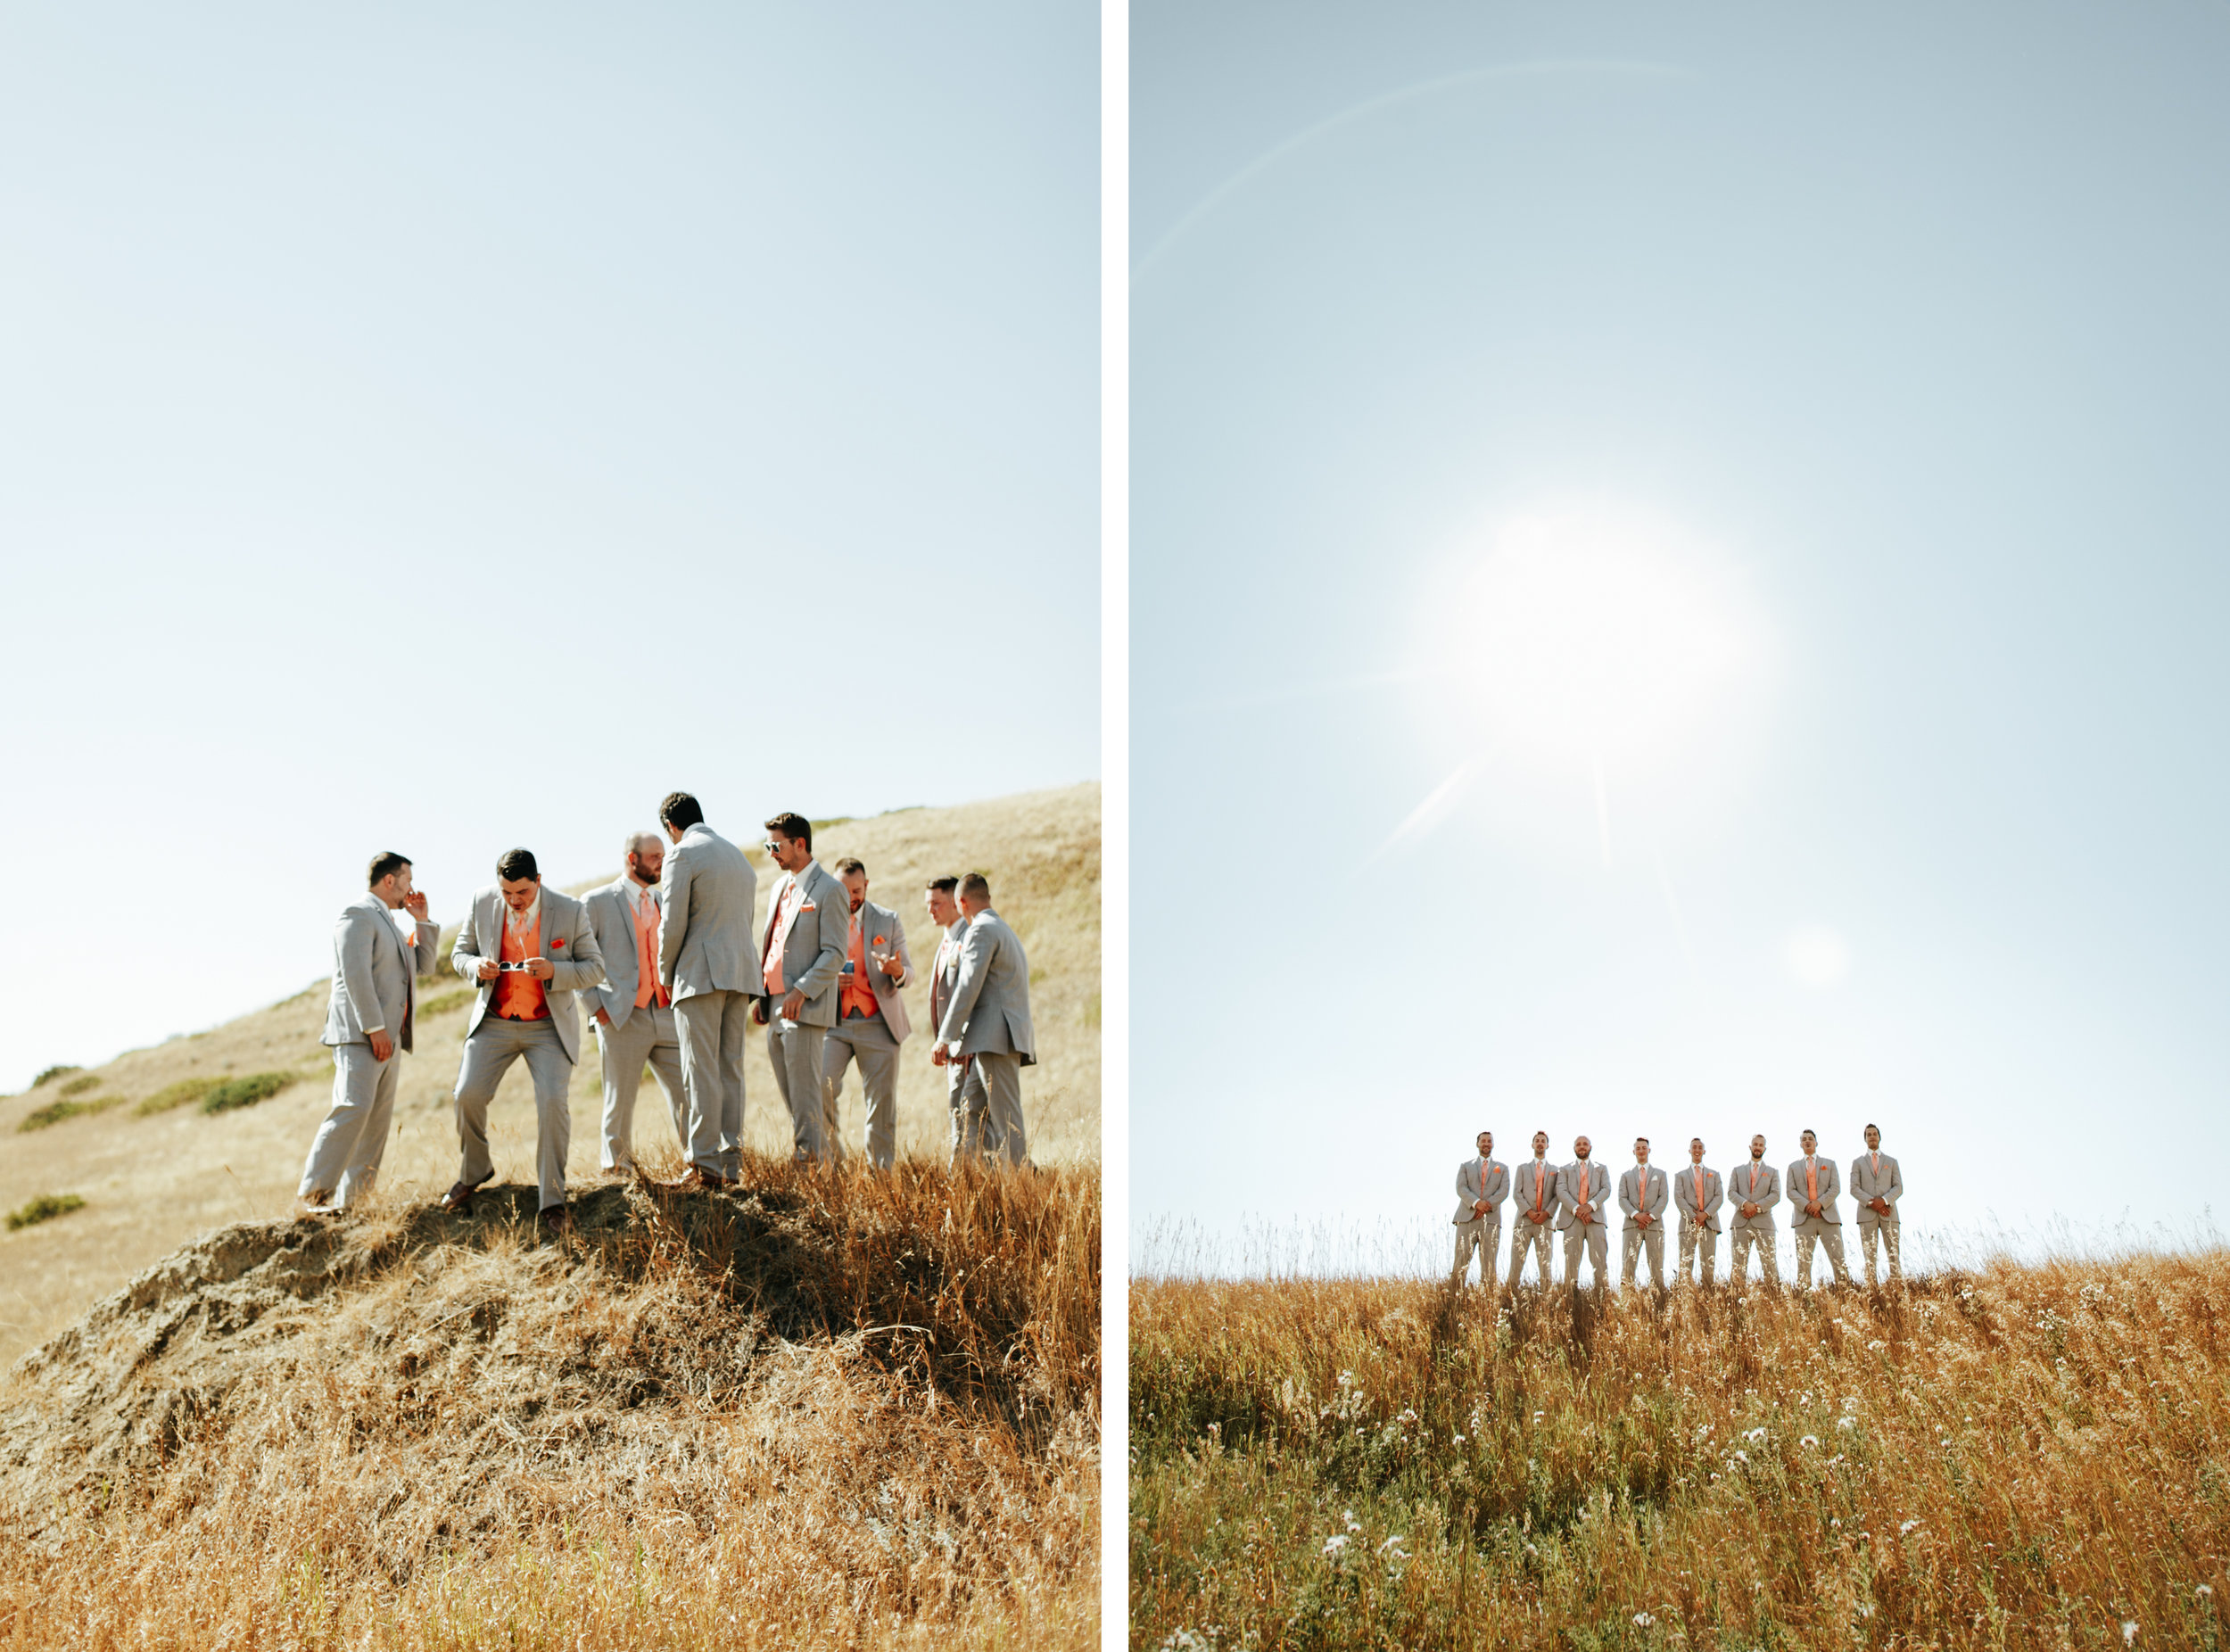 lethbridge-wedding-photography-love-and-be-loved-photographer-sean-sharla-henderson-lake-wedding-image-picture-photo-79.jpg